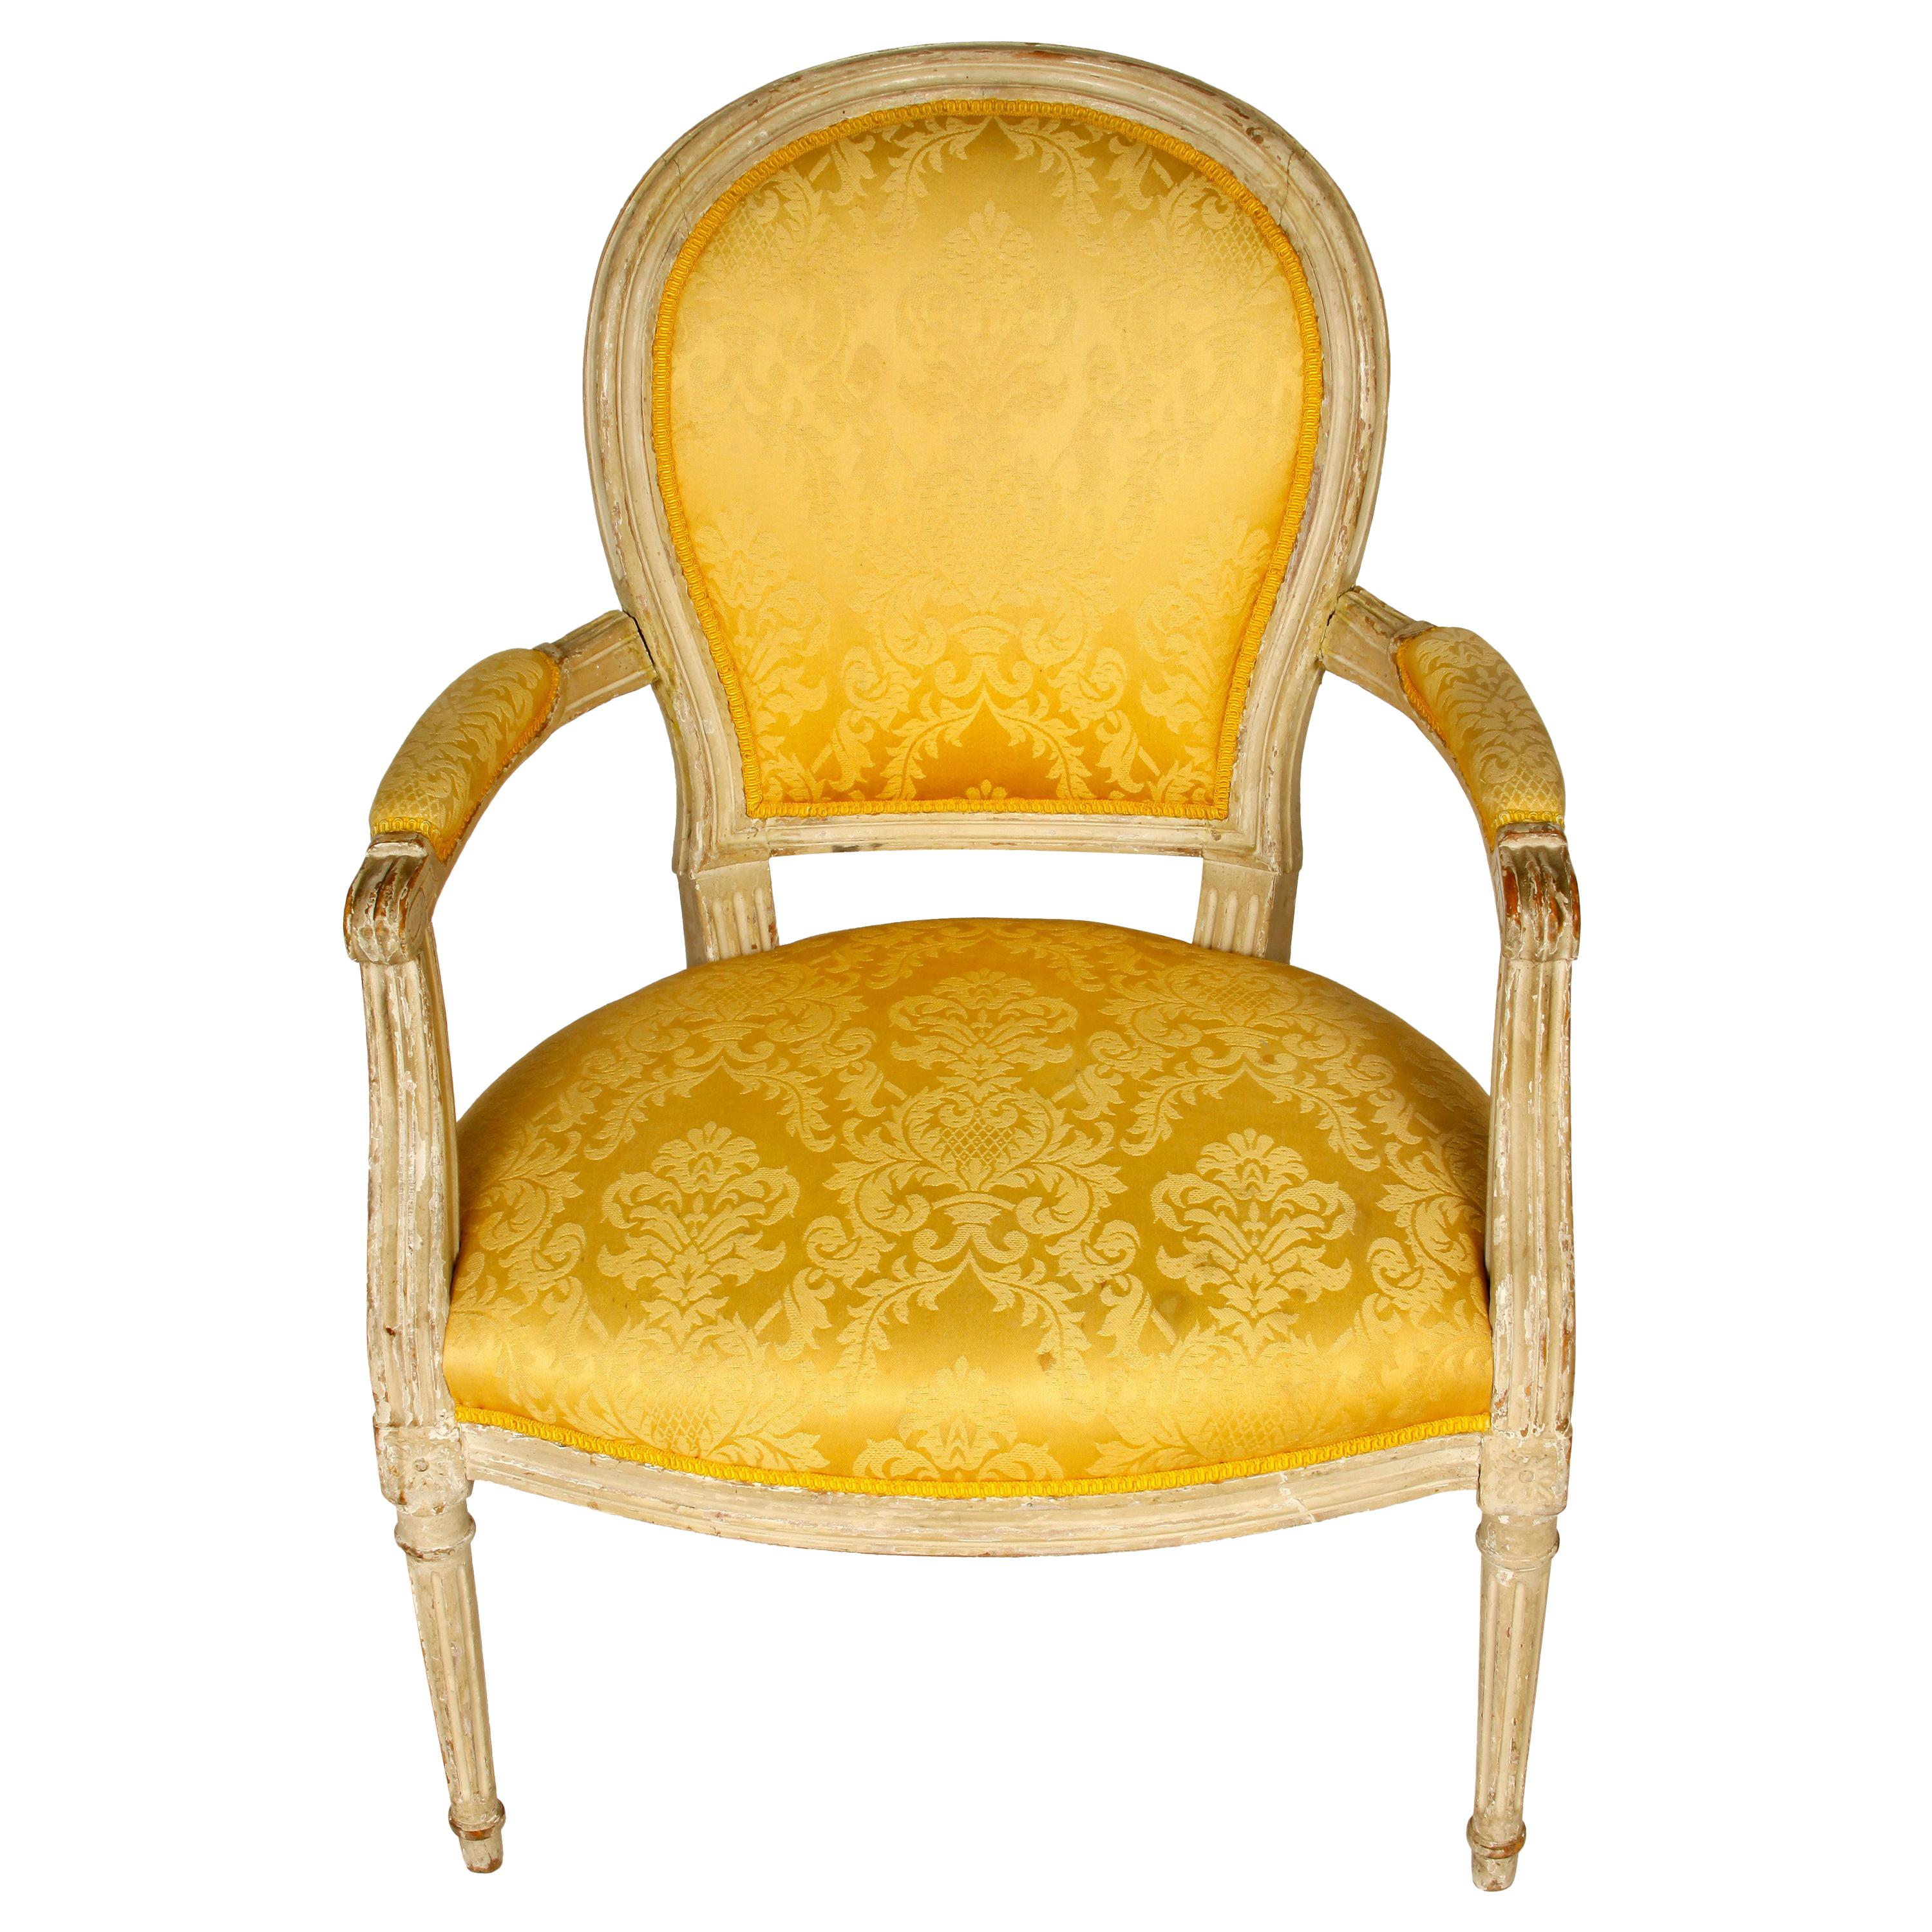 Louis XVI Style Upholstered Armchair in Yellow Damask